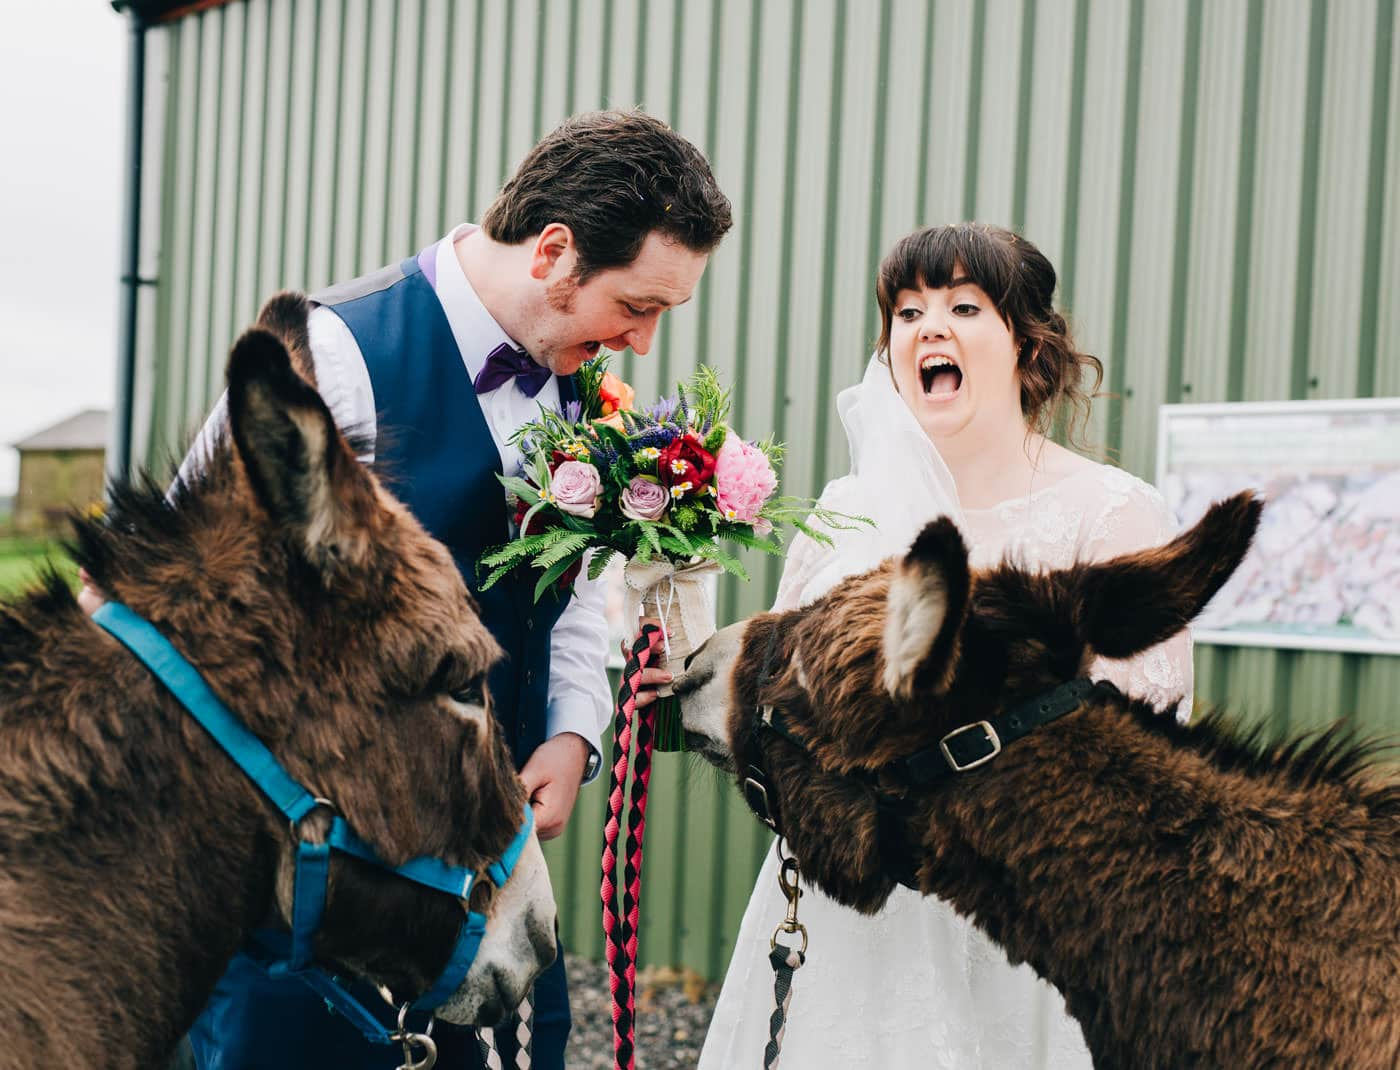 Donkeys at Wellbeing Farm wedding